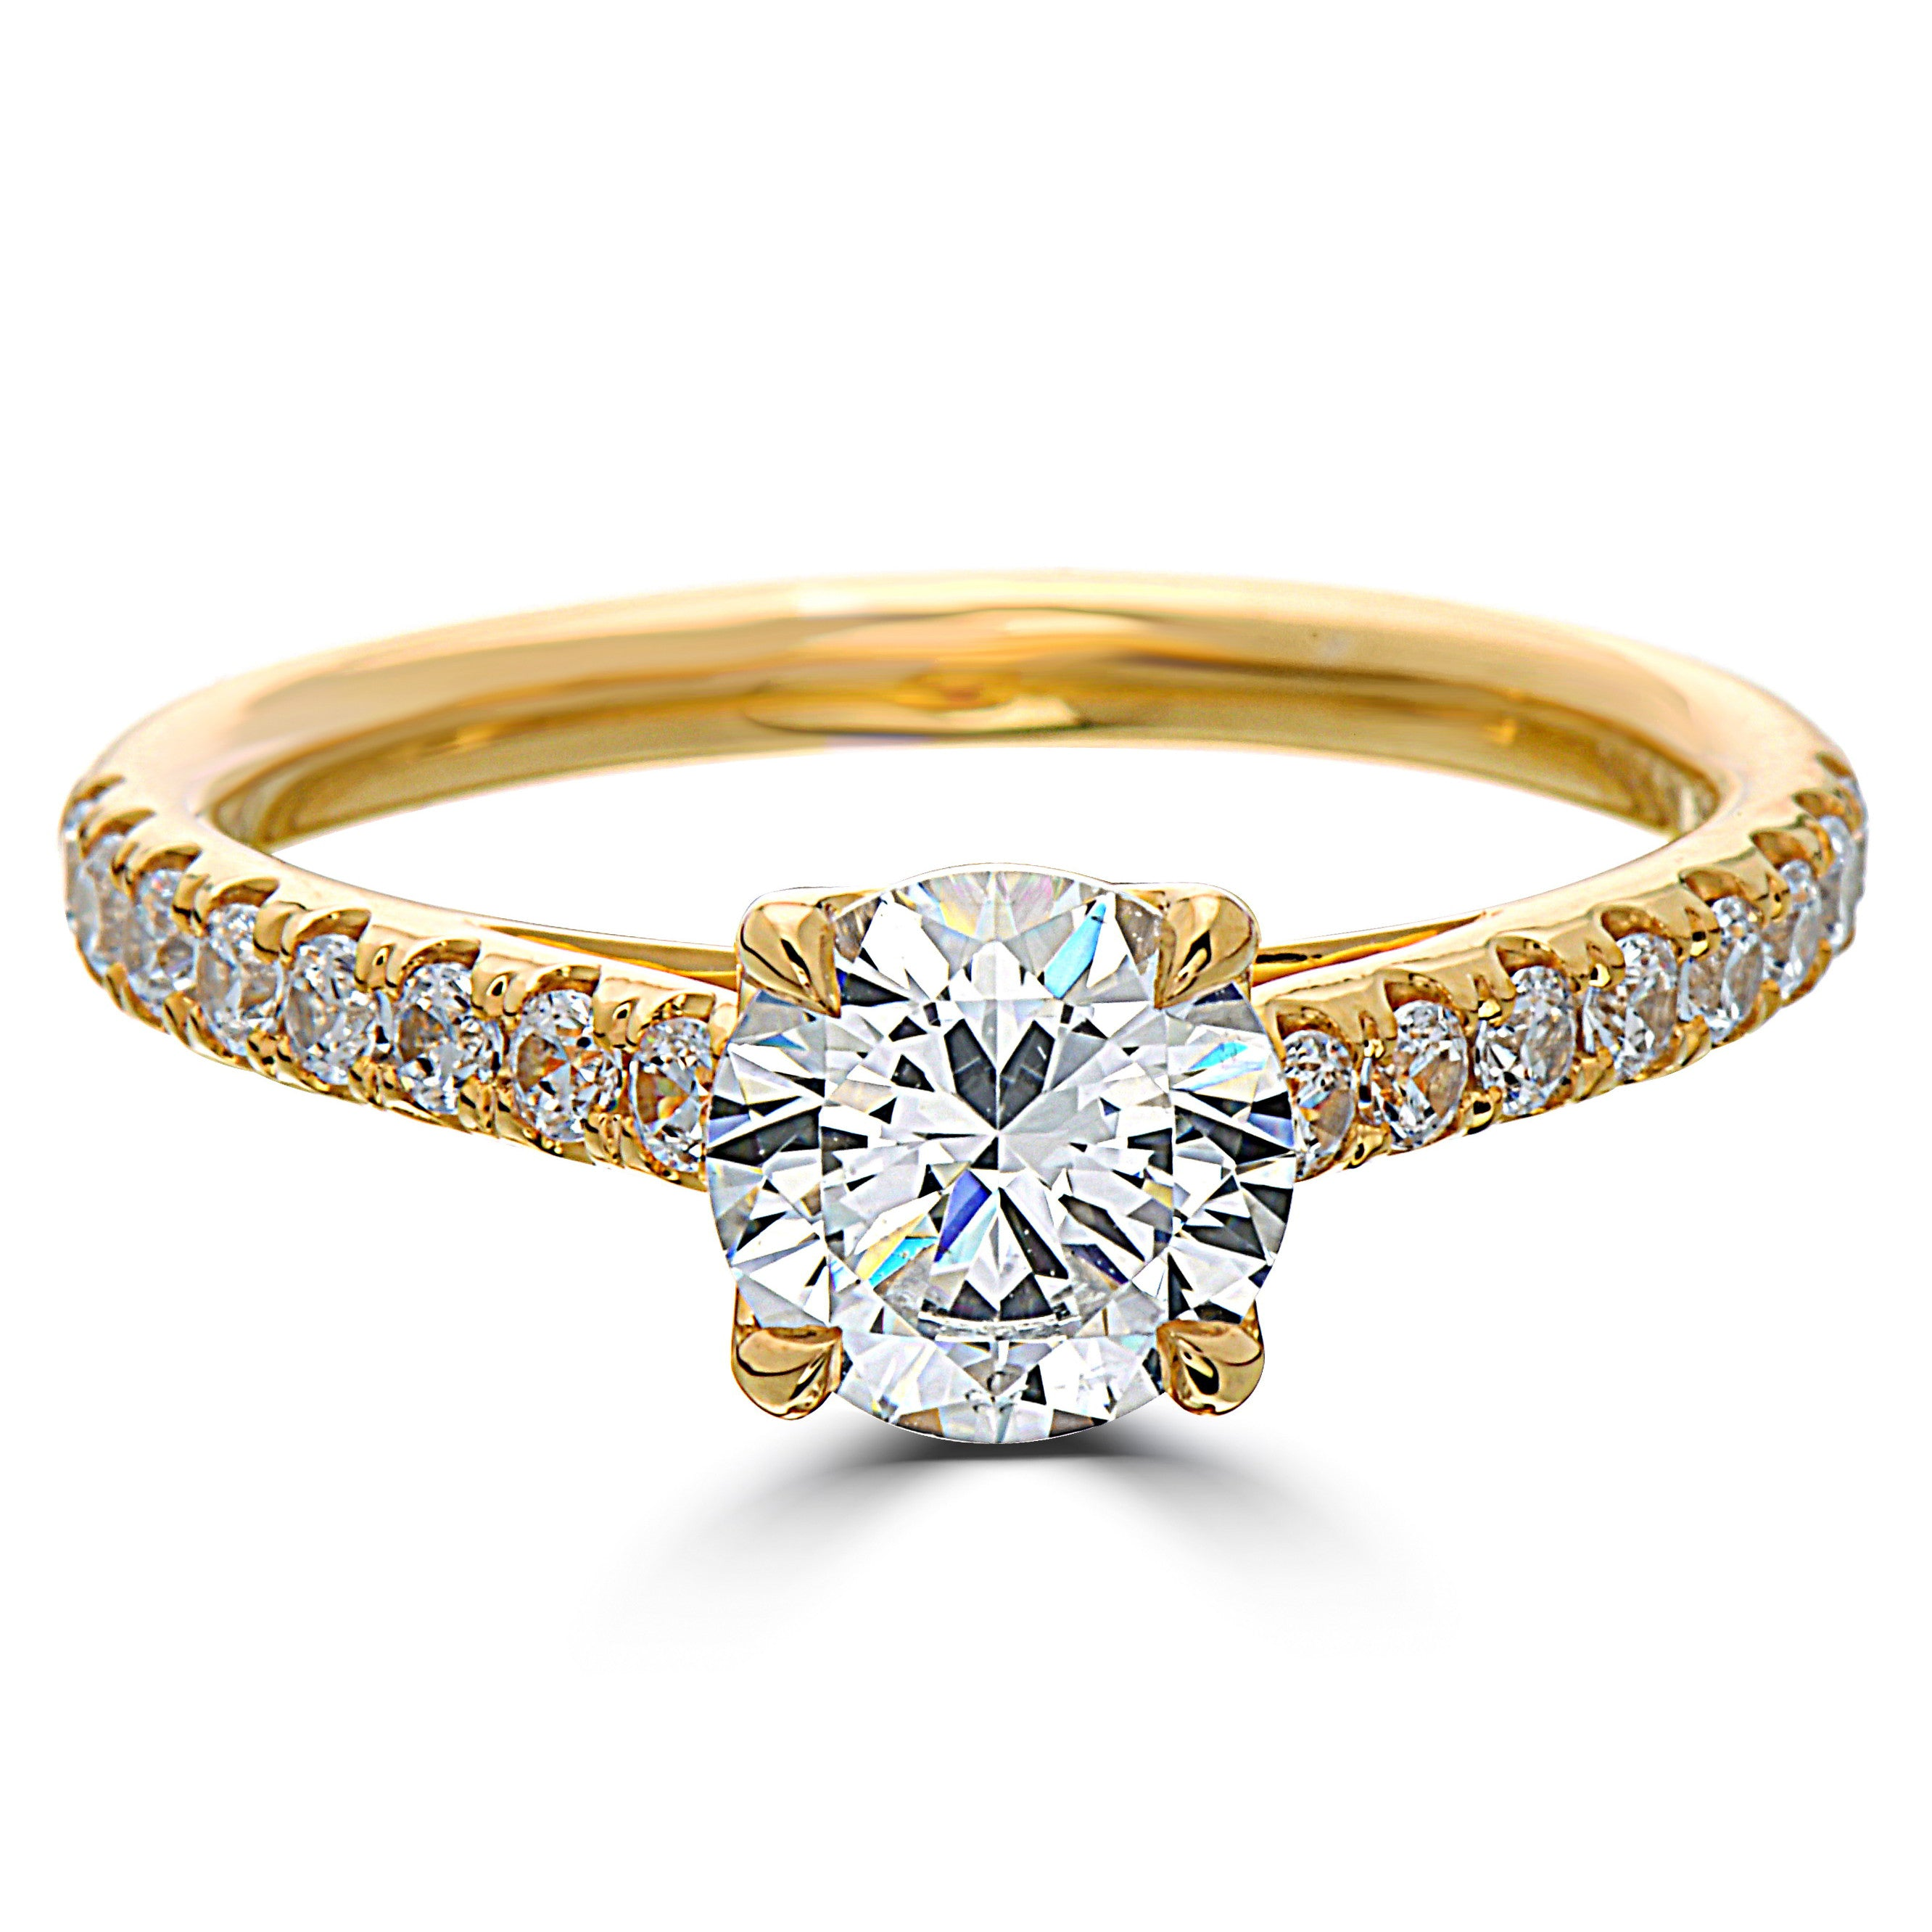 white product handcrafted ladies gold previously ladys description diamond ring rings engagement